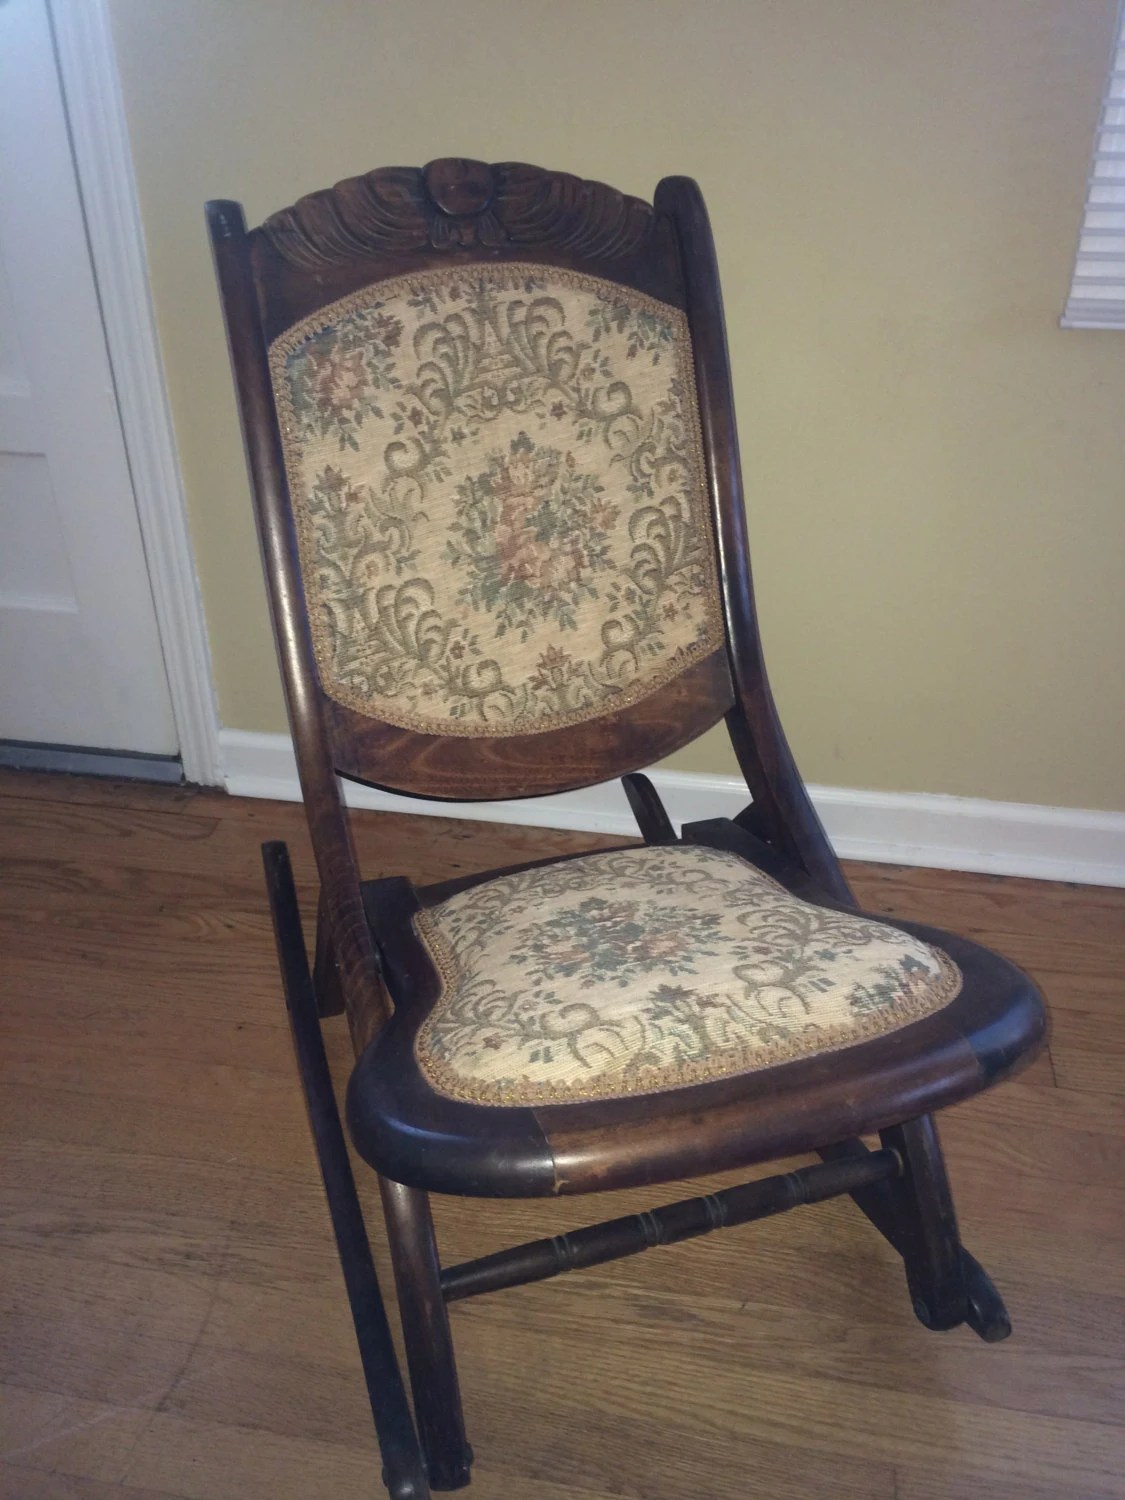 Antique Wooden Chair Wooden Hand Carved Antique Rocking Chair Embroidered Seat And